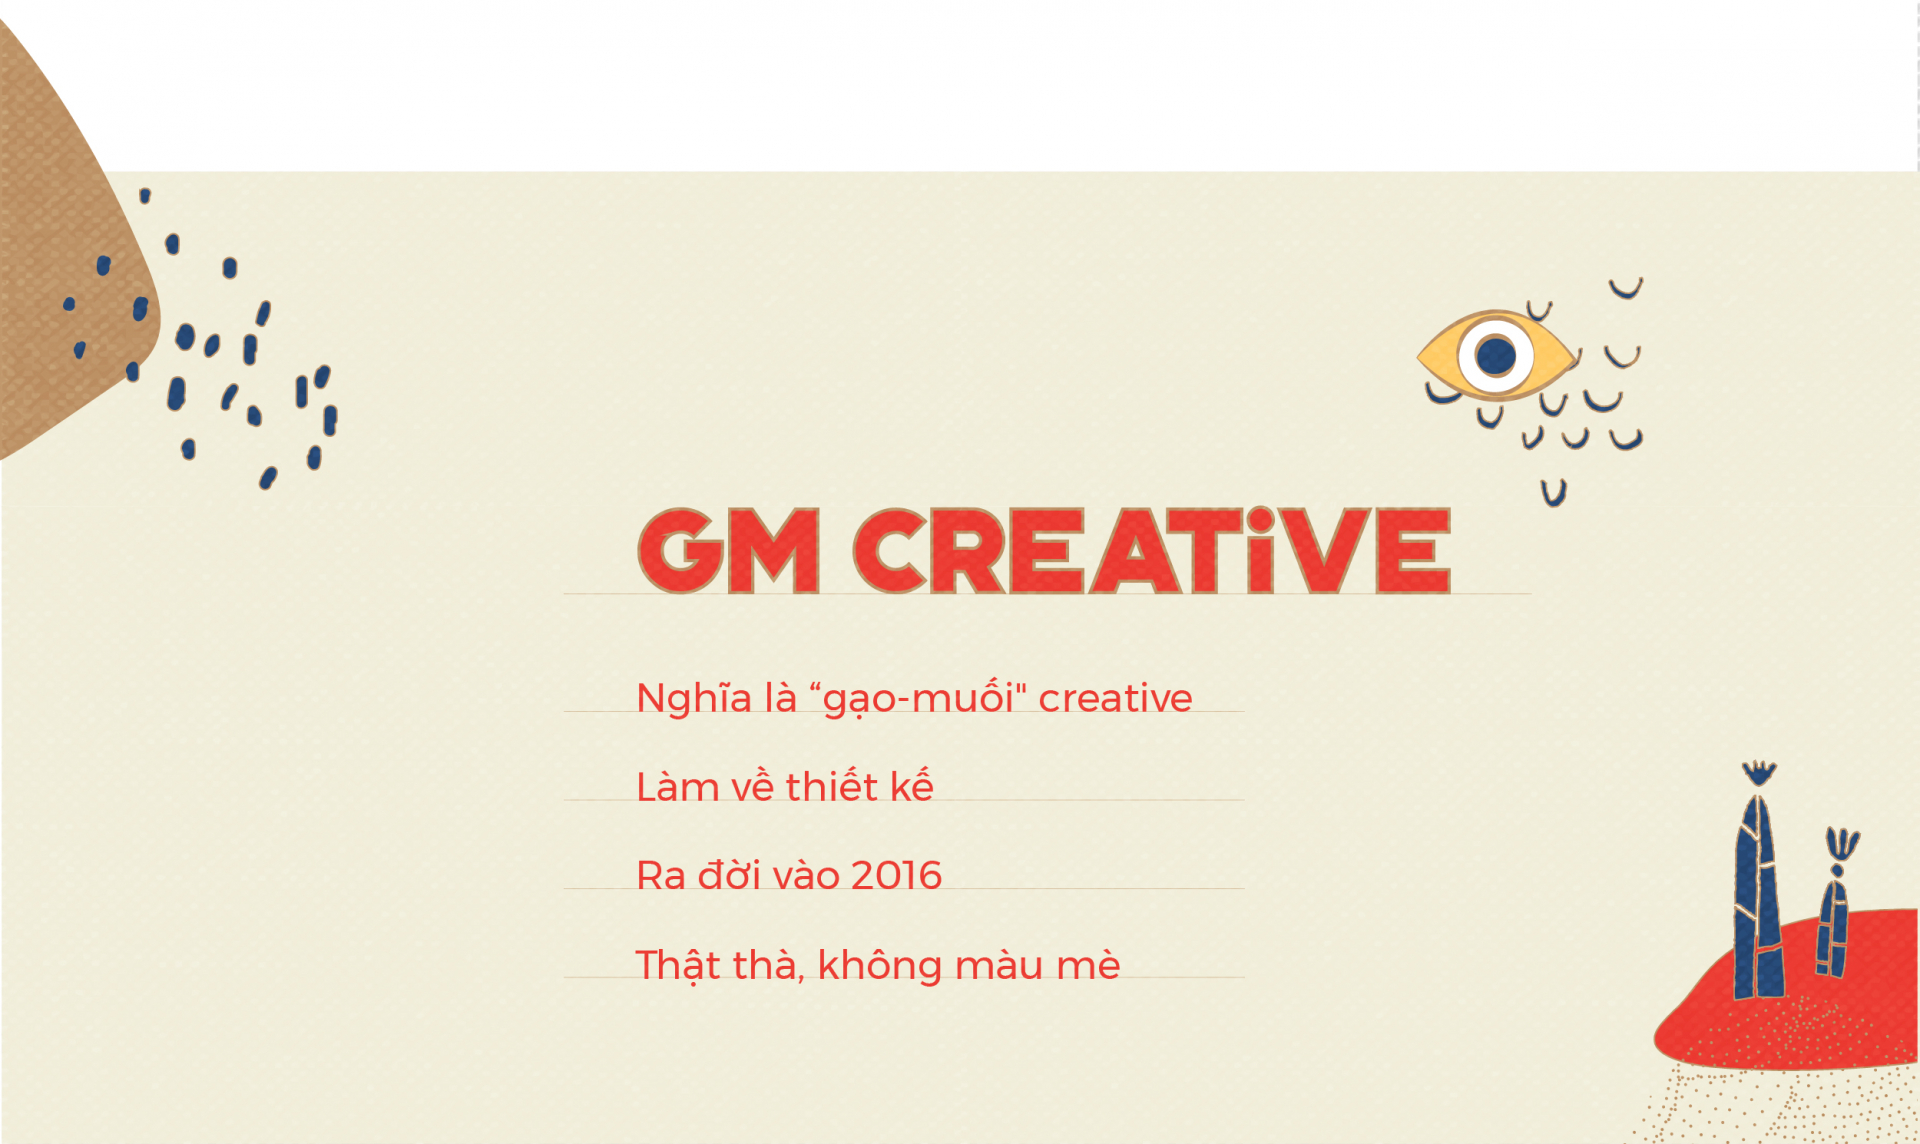 6h47 20180706 idesign gmcreative 2 info 1